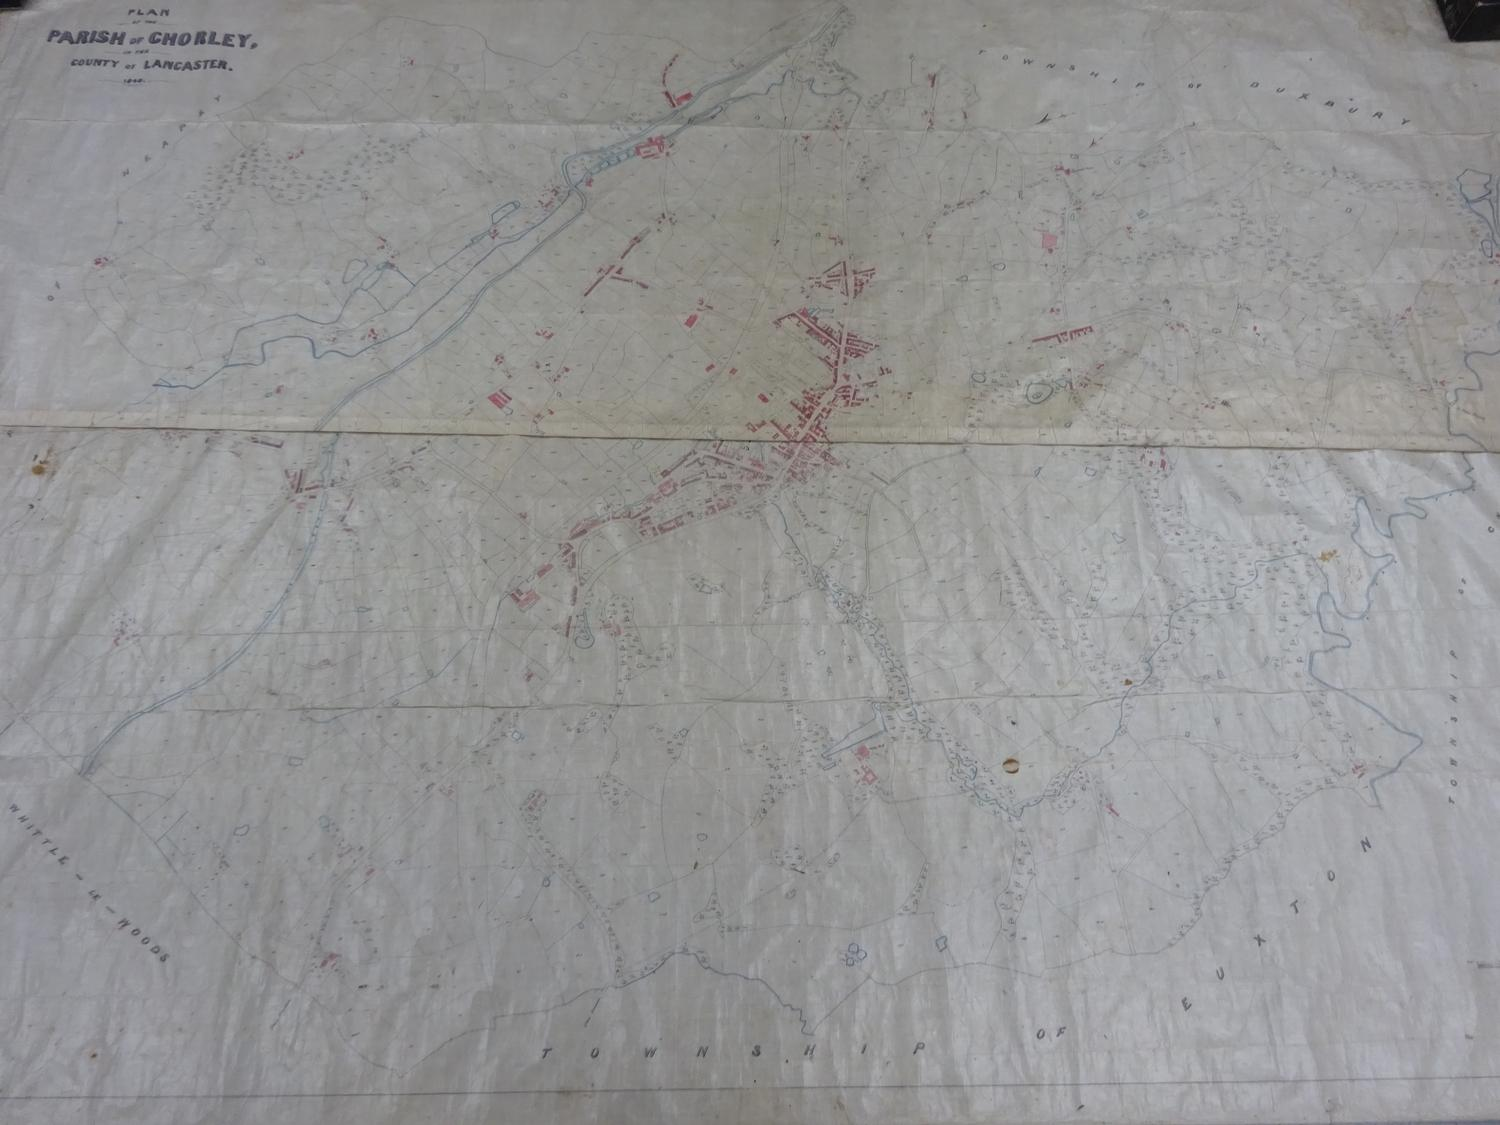 Lot 50 - 1846 hand drawn Tithe map of Chorley, Lancashire and surrounds (see description)